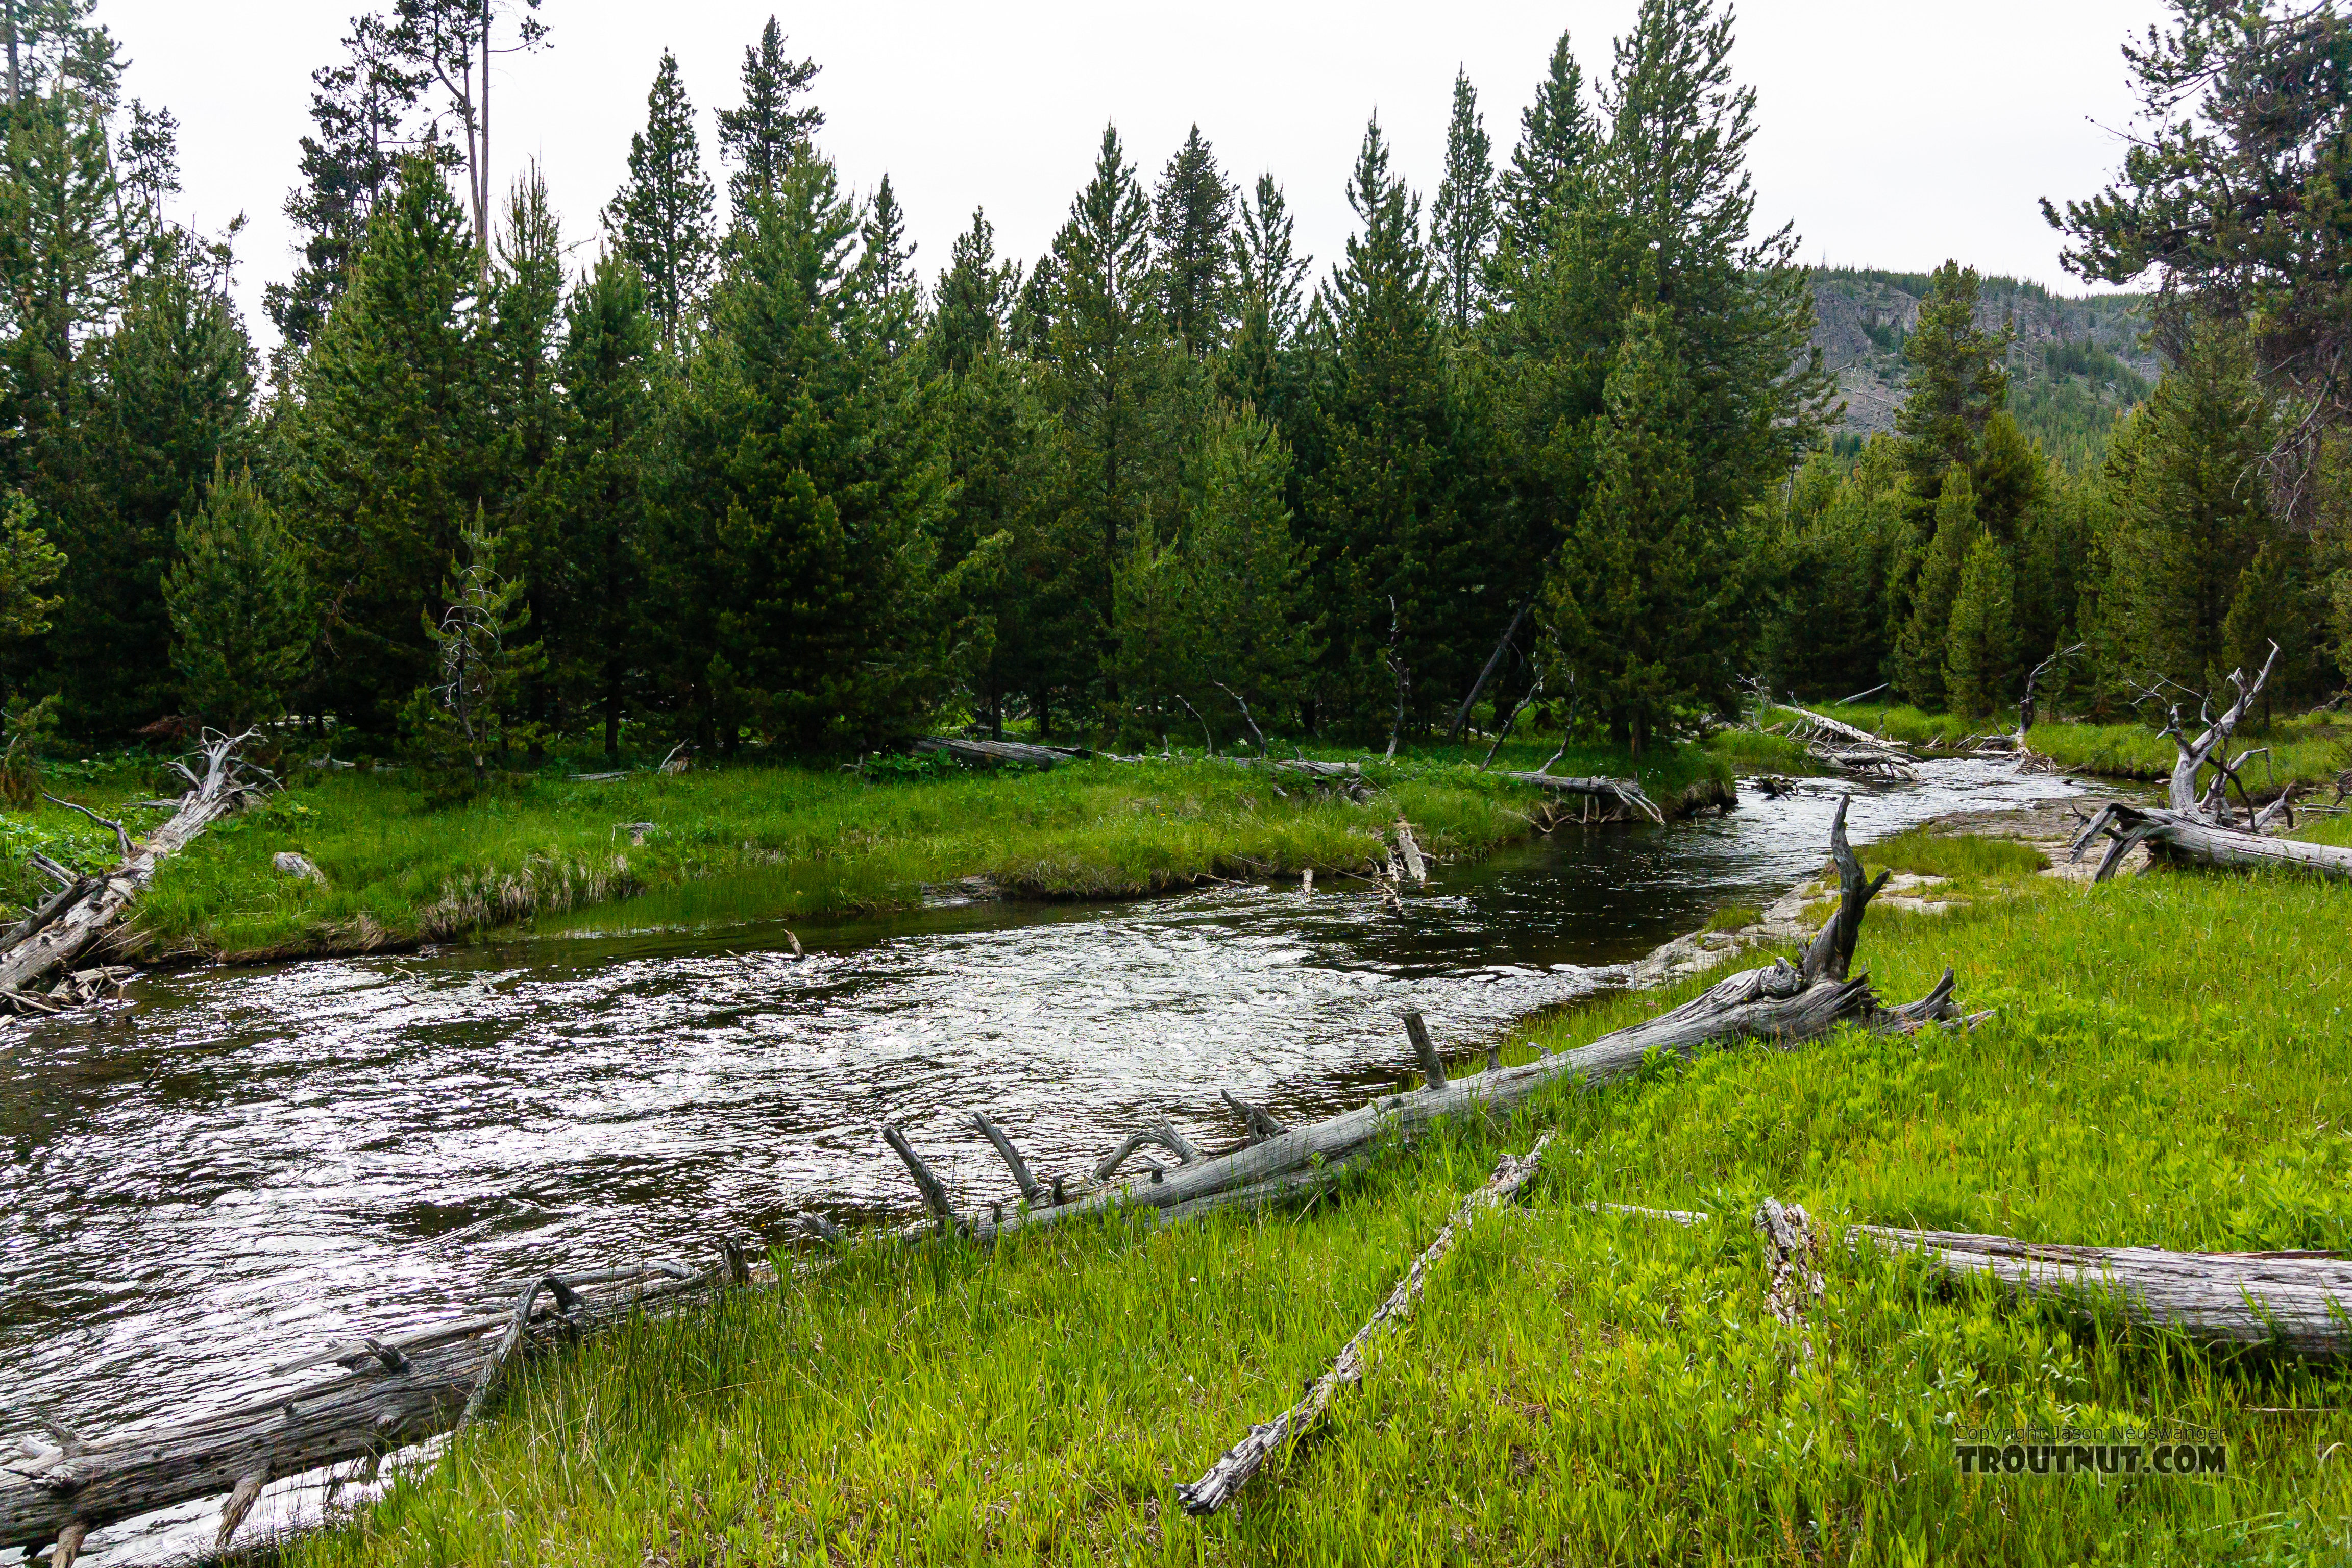 Little Firehole From the Little Firehole River in Wyoming.